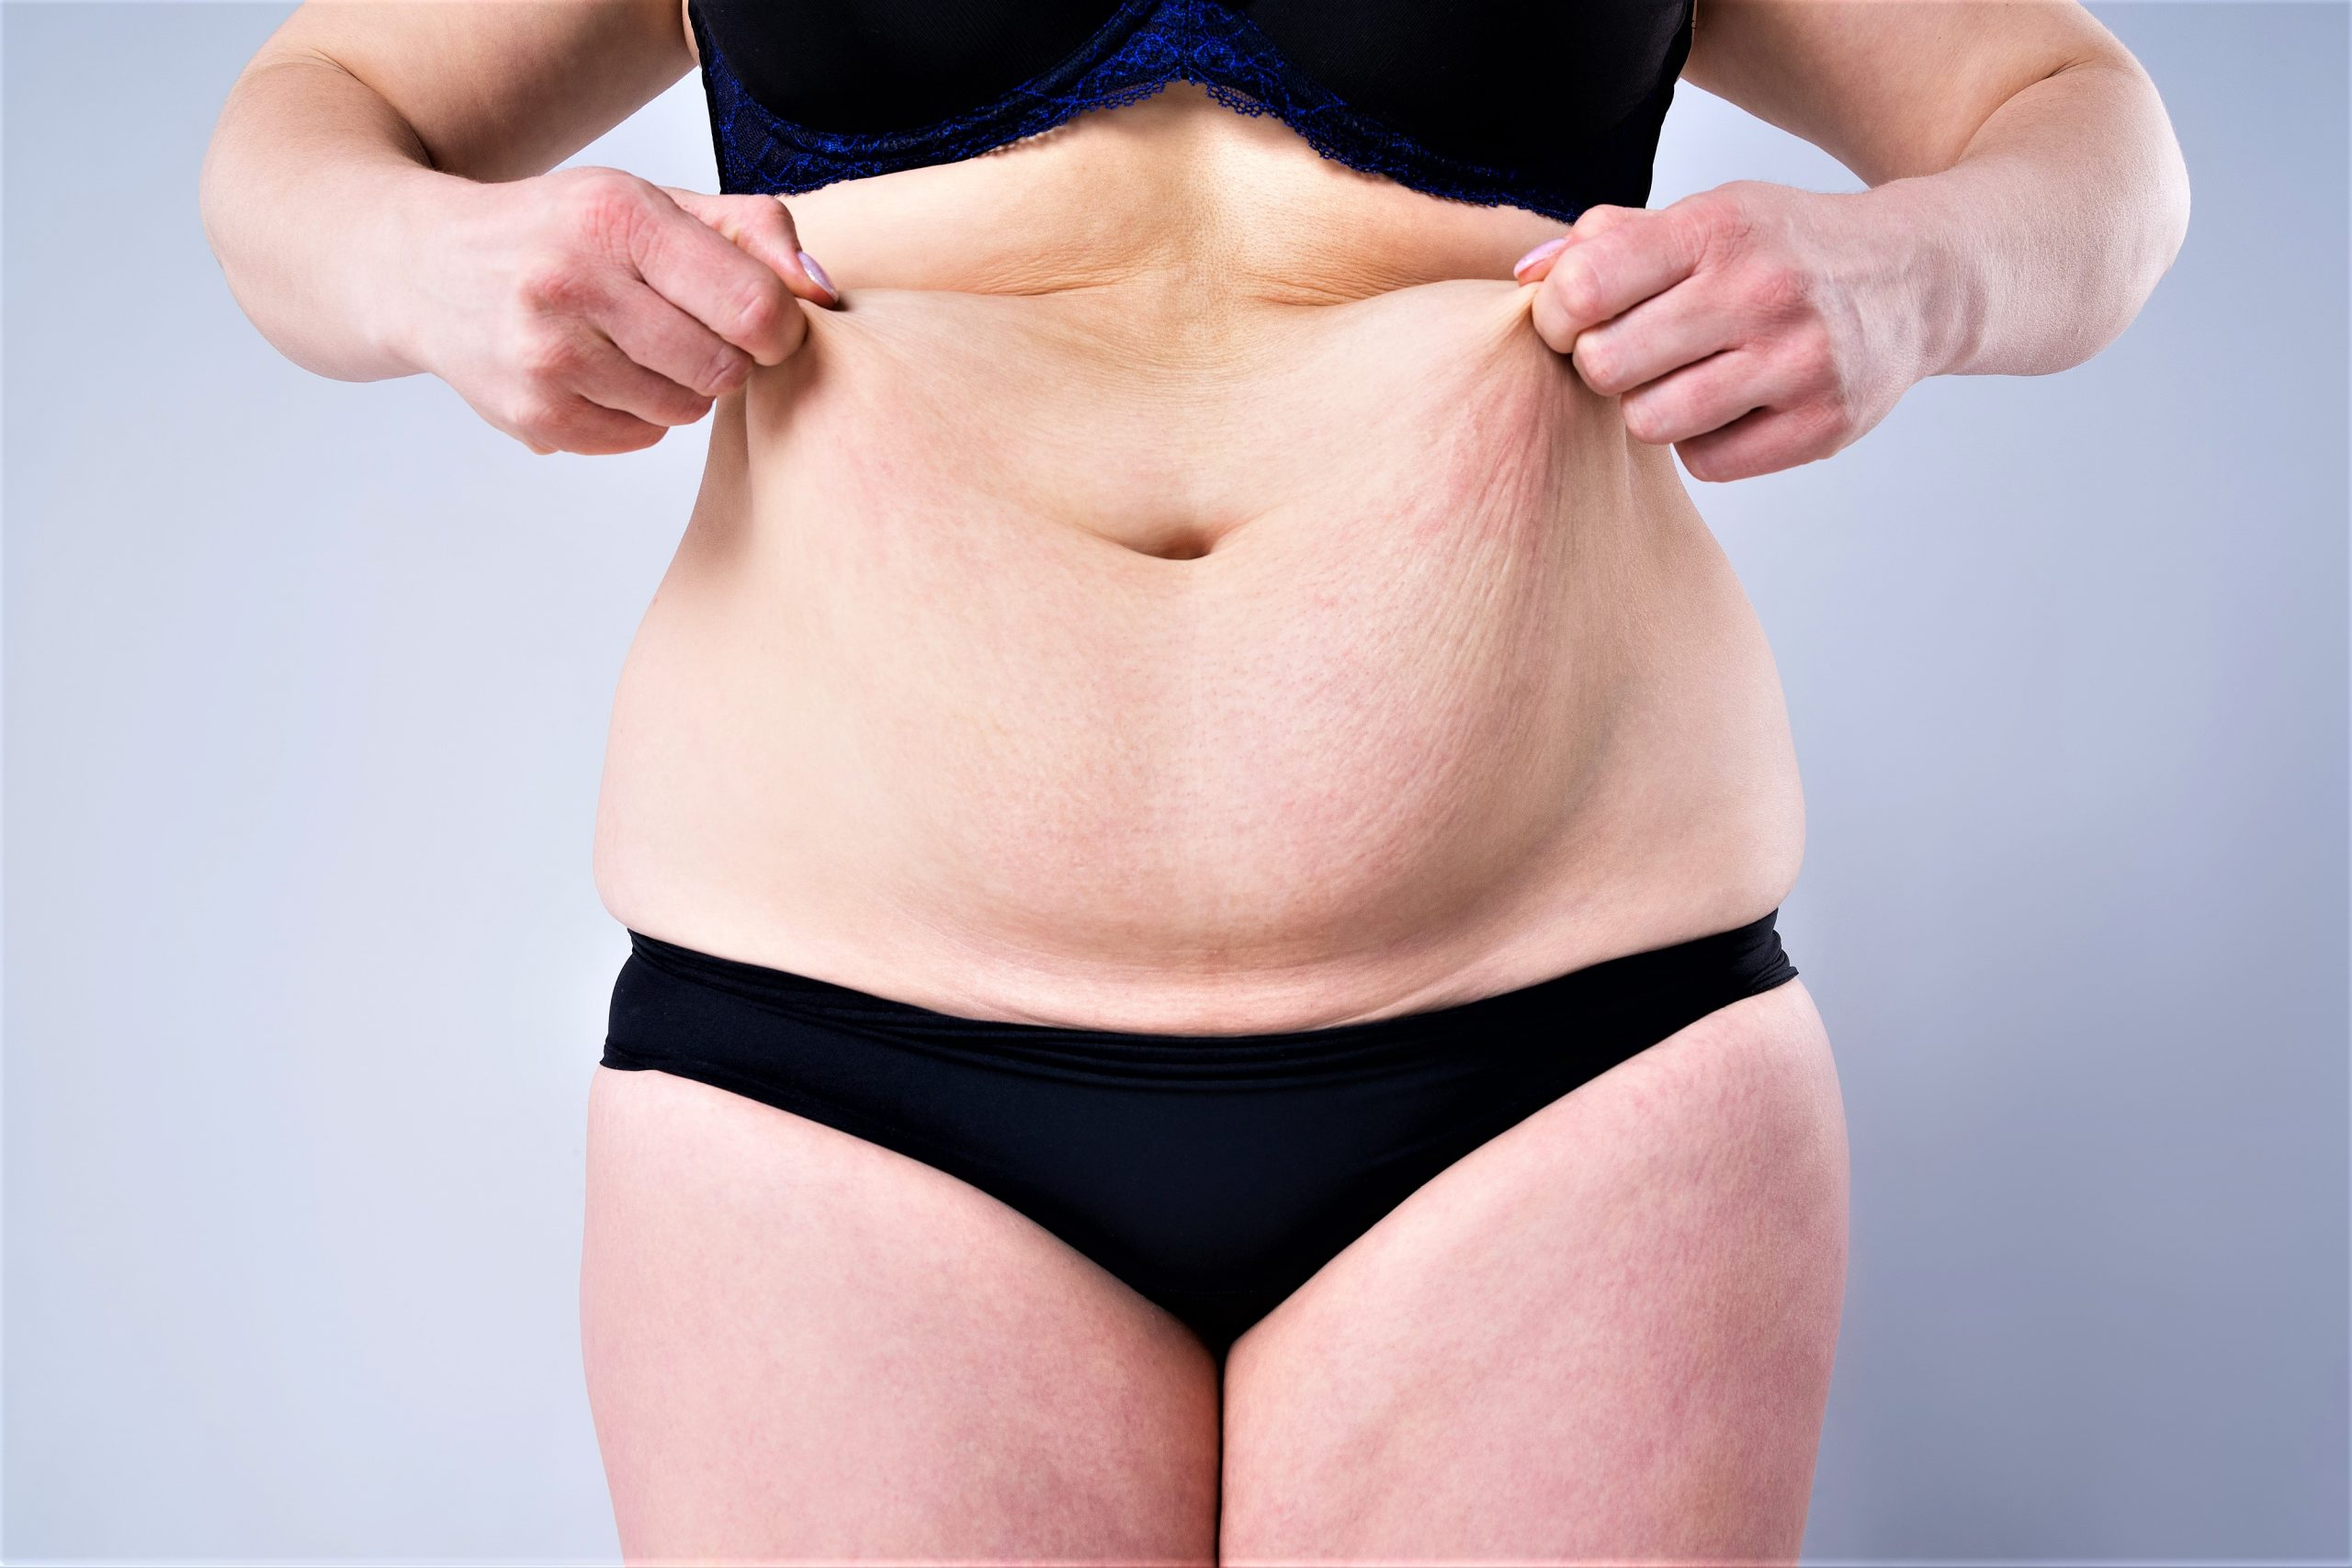 Circumferential Body Lift Surgery for Abdominal, Buttock & Thigh Laxity (Post-bariatric Weight Loss Contouring)